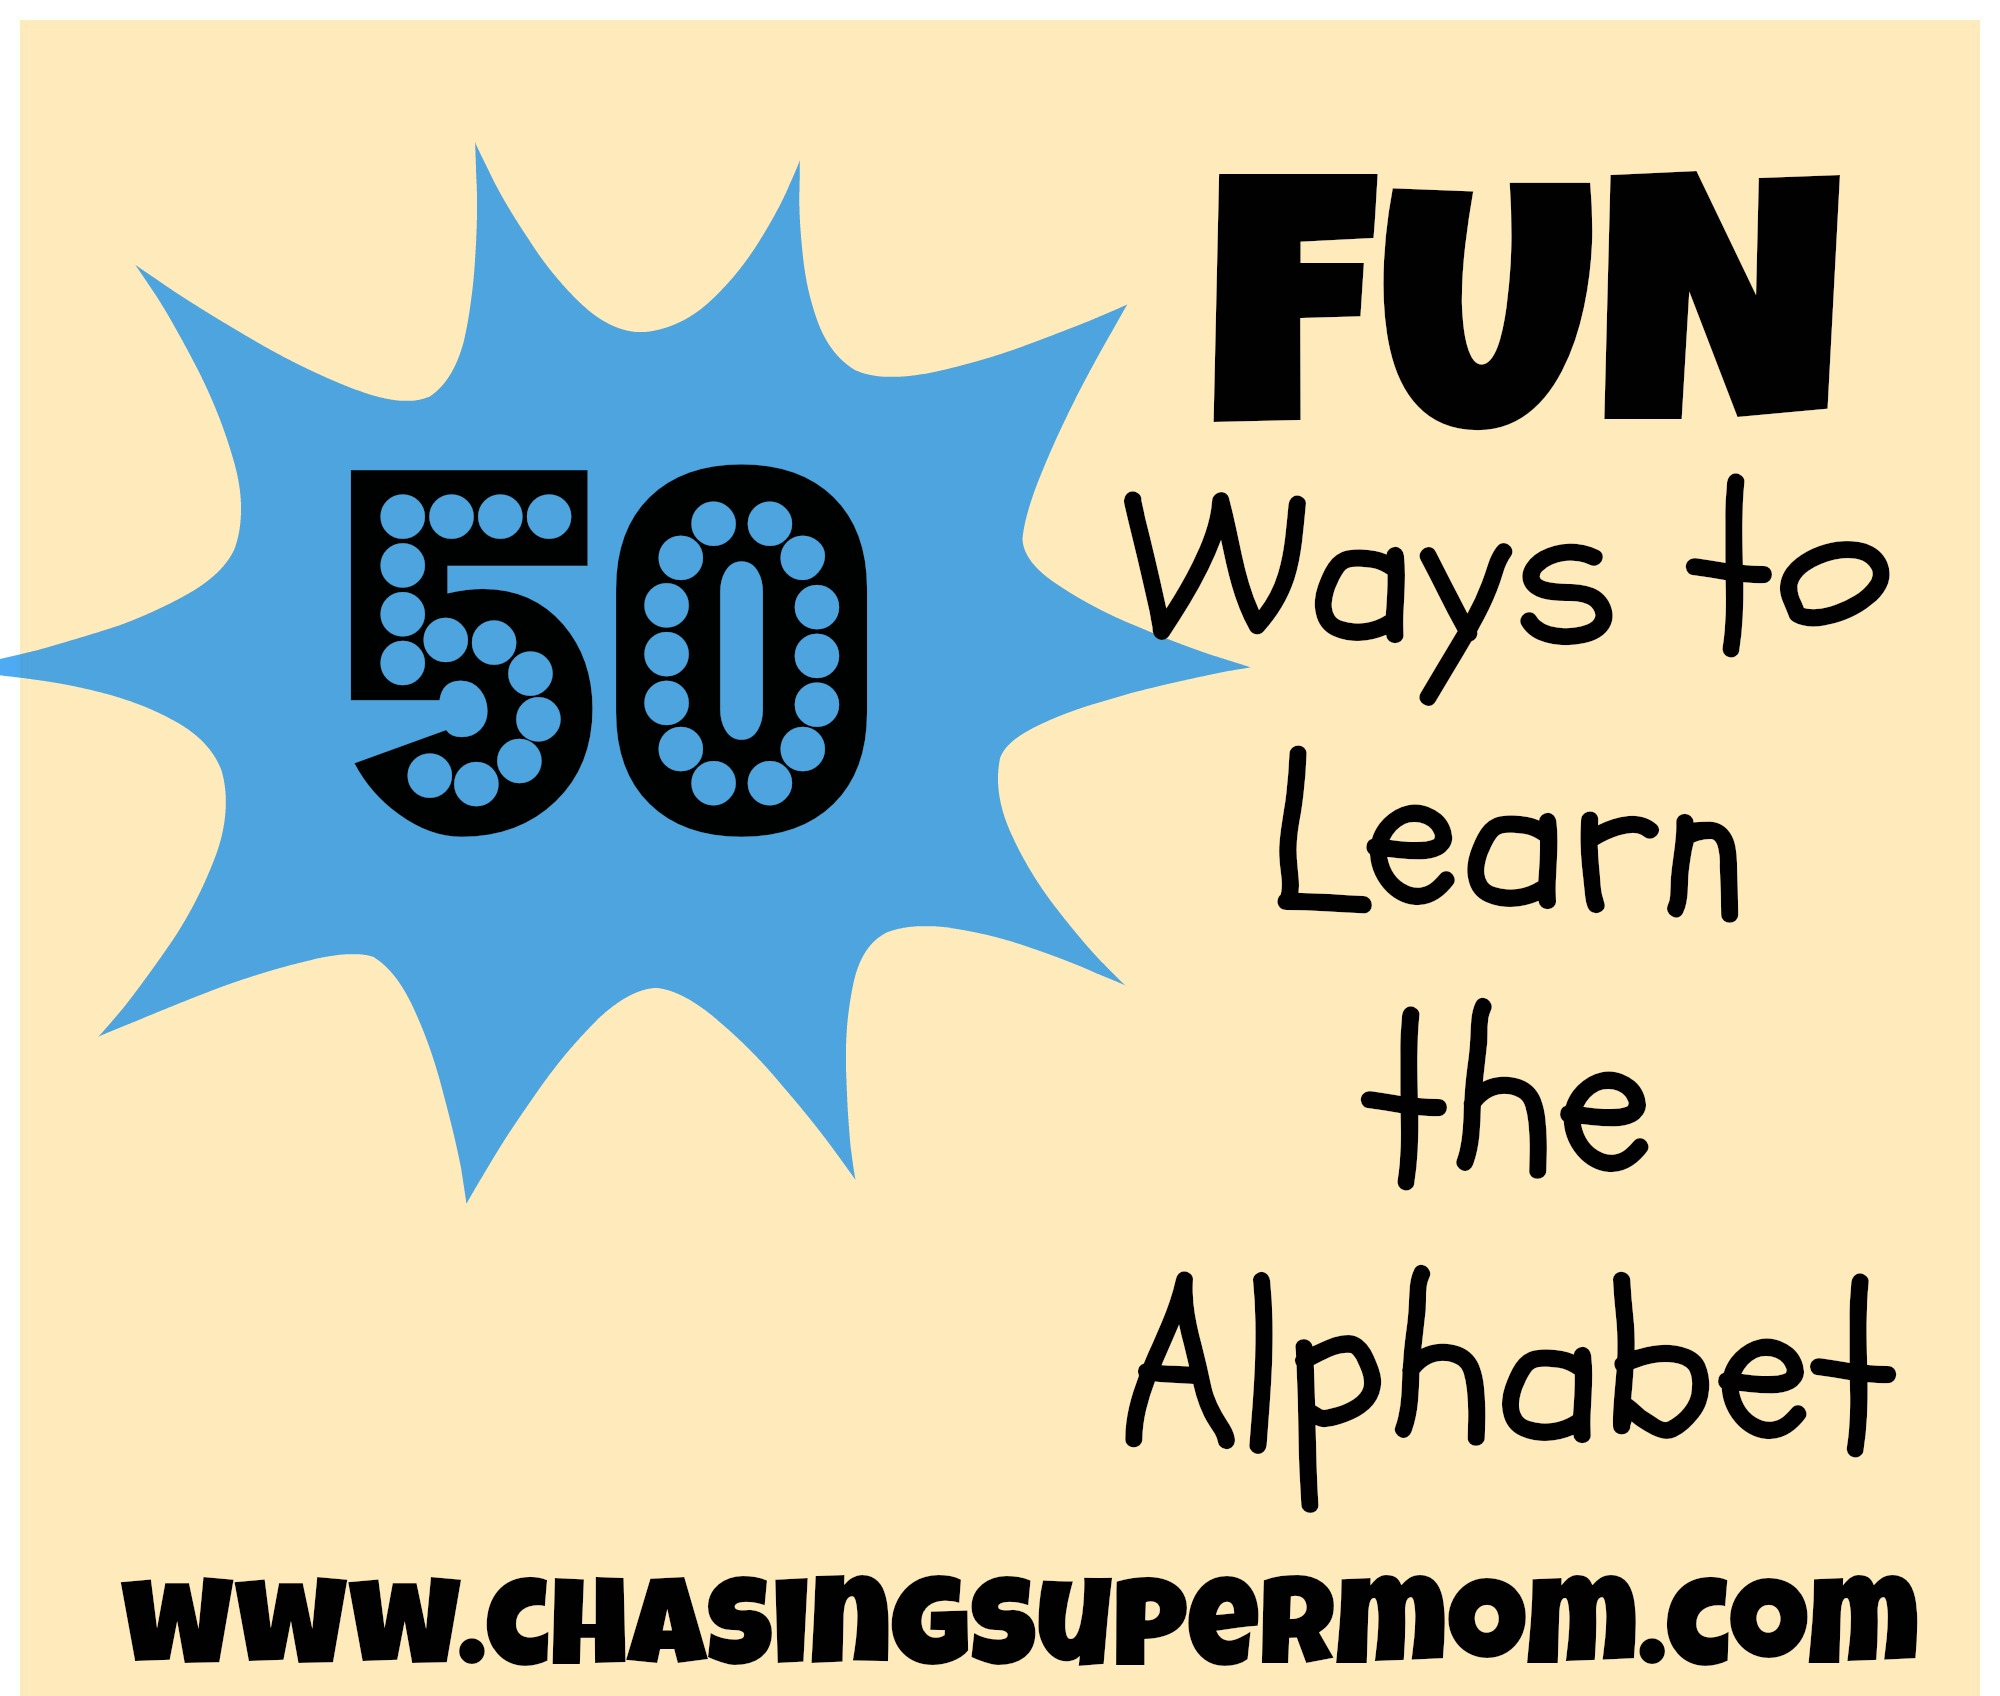 The Everything ABC Post – 50 FUN Ways to Learn the Alphabet